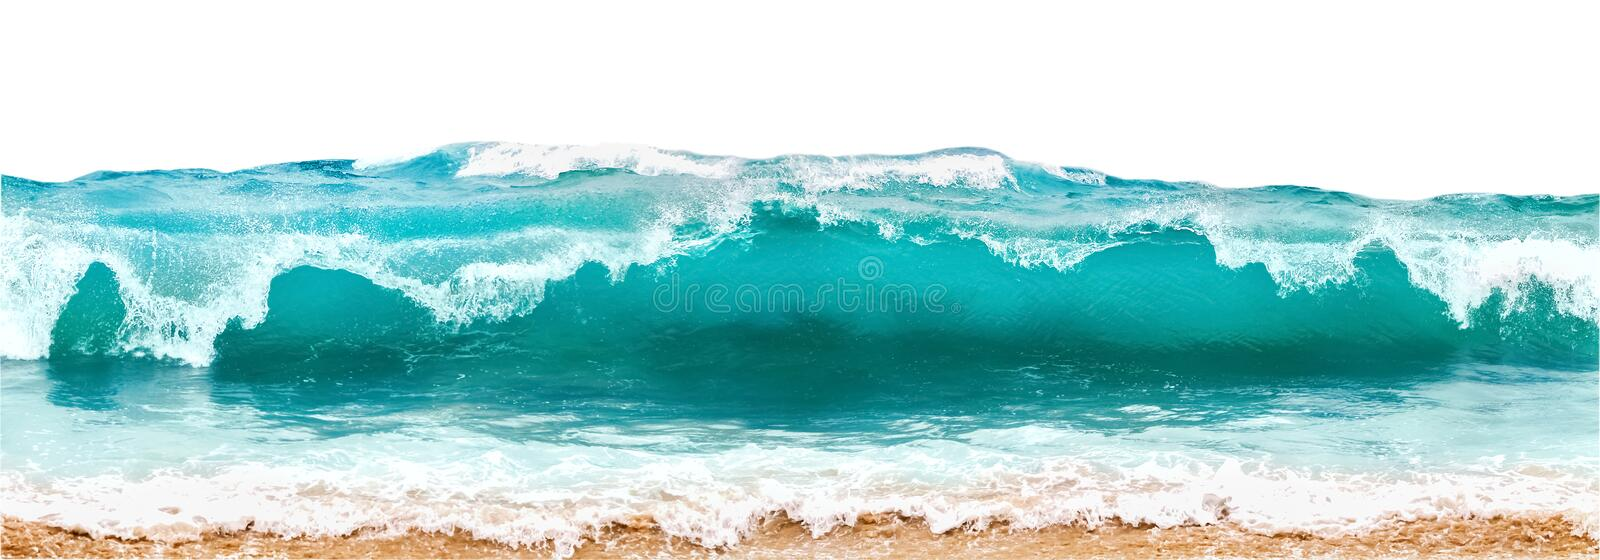 Blue and aquamarine color sea waves and yellow sand with white foam isolated on white background. Marine beach background. royalty free stock photos